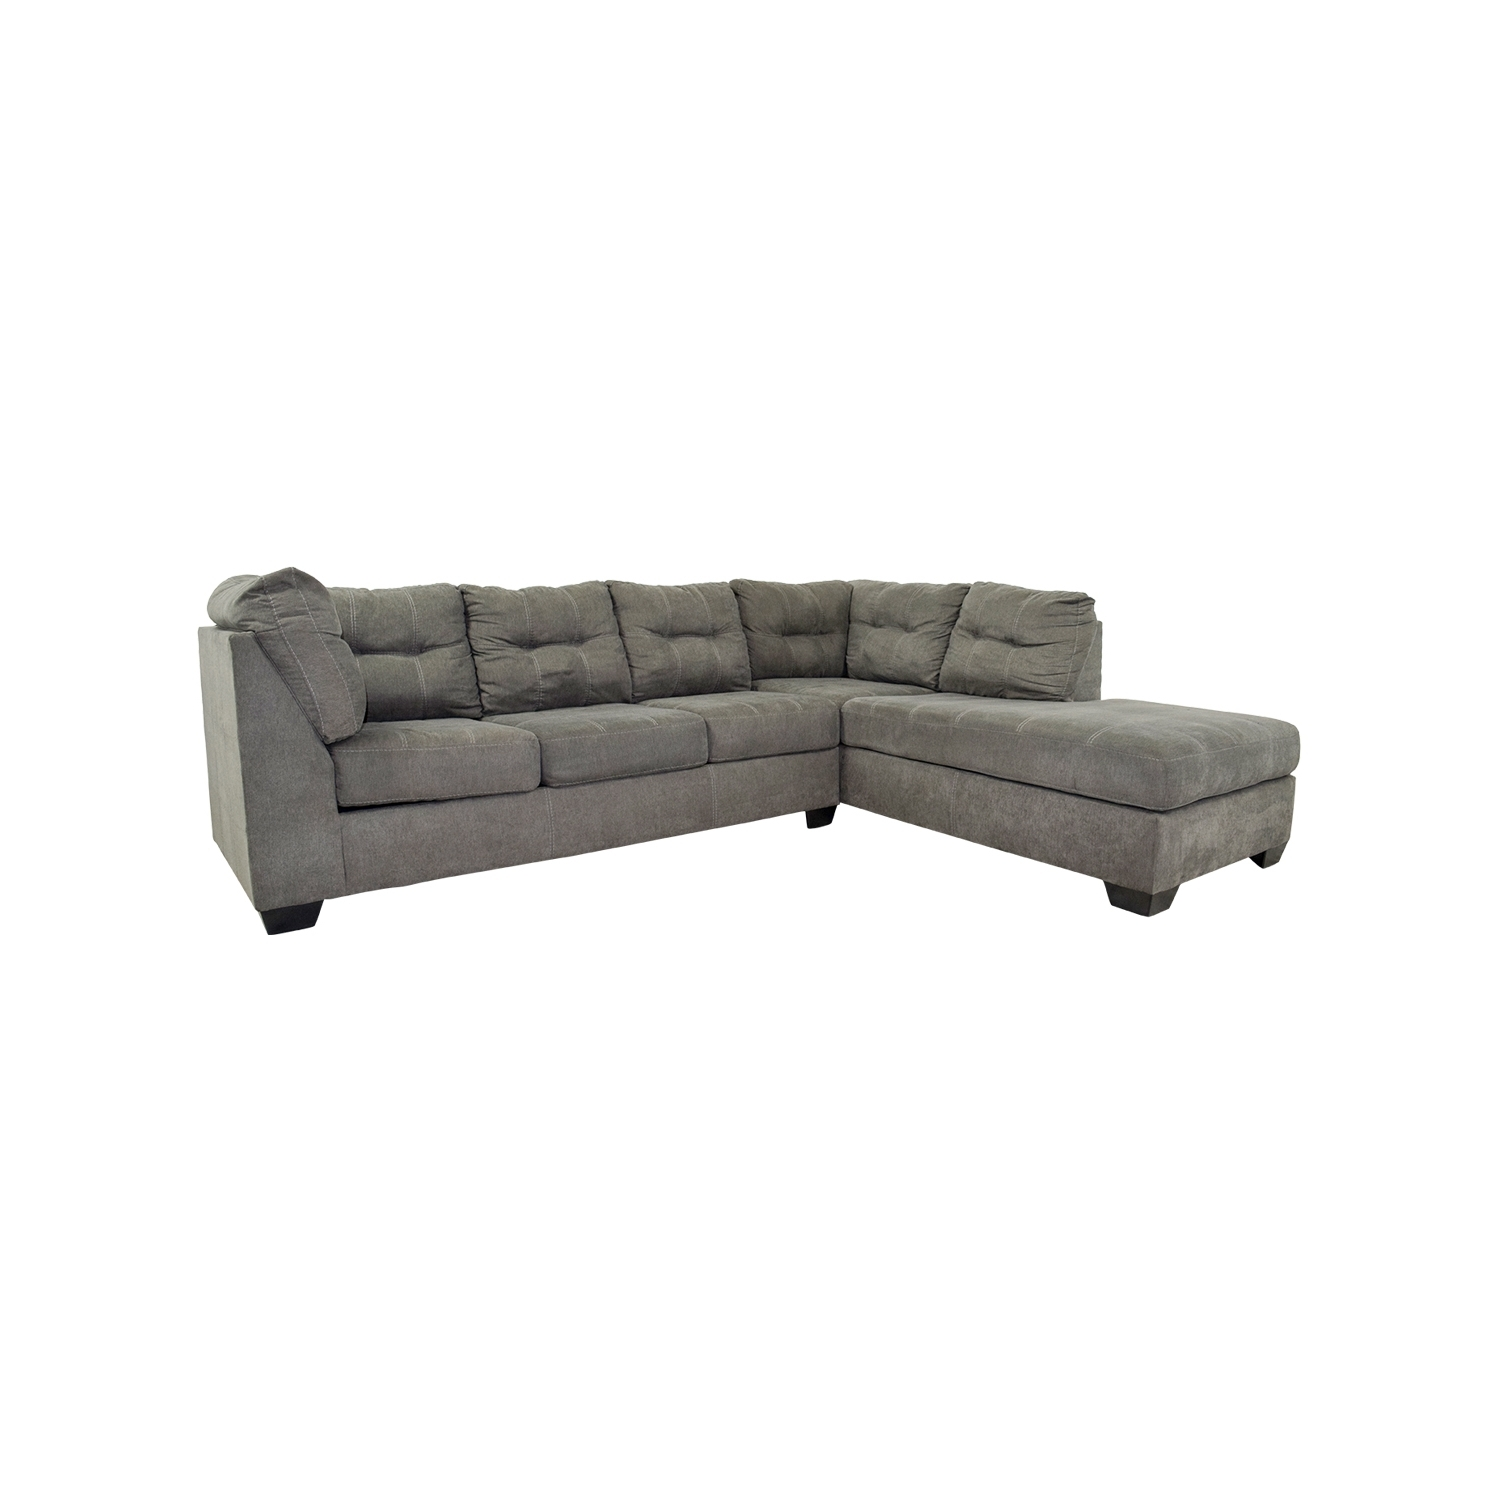 [%45% Off – Mercury Row Mercury Row Cornett Charcoal Sectional / Sofas Intended For Widely Used Furniture Row Sectional Sofas|furniture Row Sectional Sofas With Regard To Current 45% Off – Mercury Row Mercury Row Cornett Charcoal Sectional / Sofas|most Recently Released Furniture Row Sectional Sofas Within 45% Off – Mercury Row Mercury Row Cornett Charcoal Sectional / Sofas|fashionable 45% Off – Mercury Row Mercury Row Cornett Charcoal Sectional / Sofas Throughout Furniture Row Sectional Sofas%] (View 20 of 20)